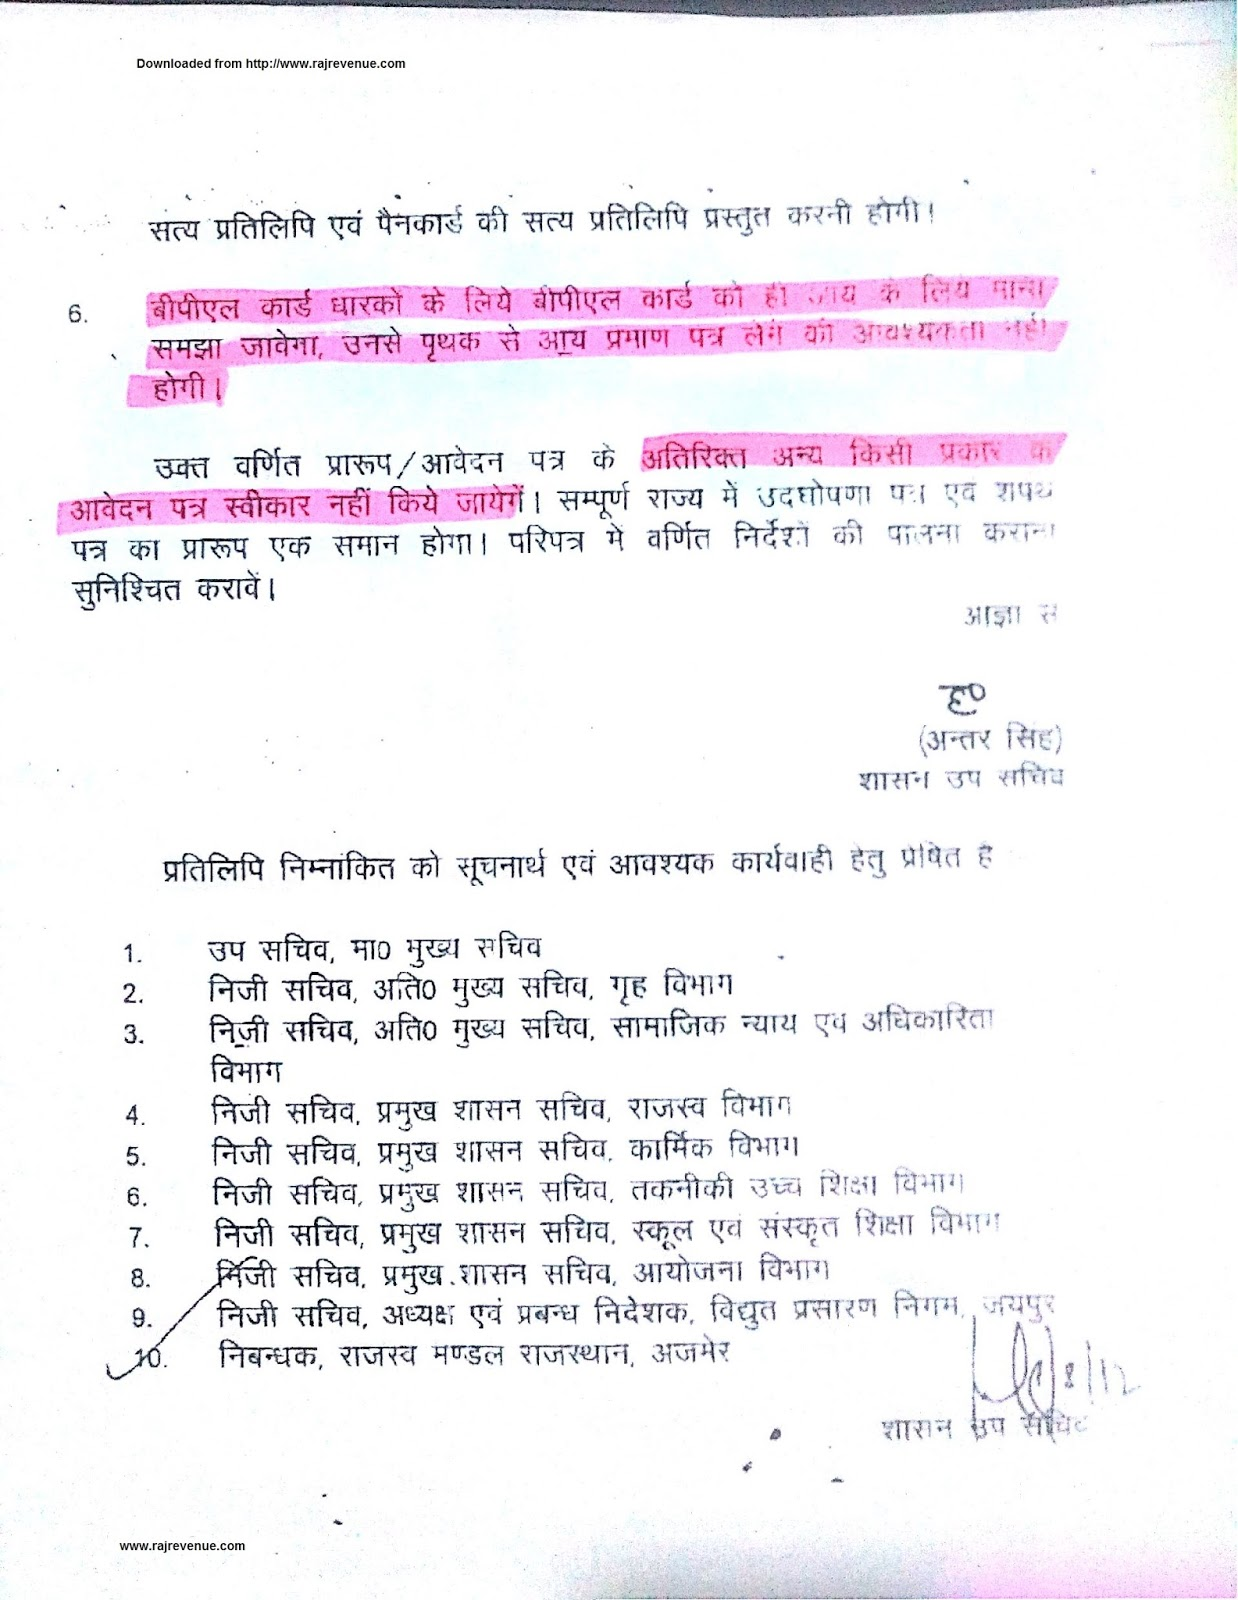 Rajasthan revenue department acts rules circulars and paripatra or circular no p 1334 rajgroup 12012 date 09082012 by rajasthan government revenue gr 1 department yelopaper Image collections